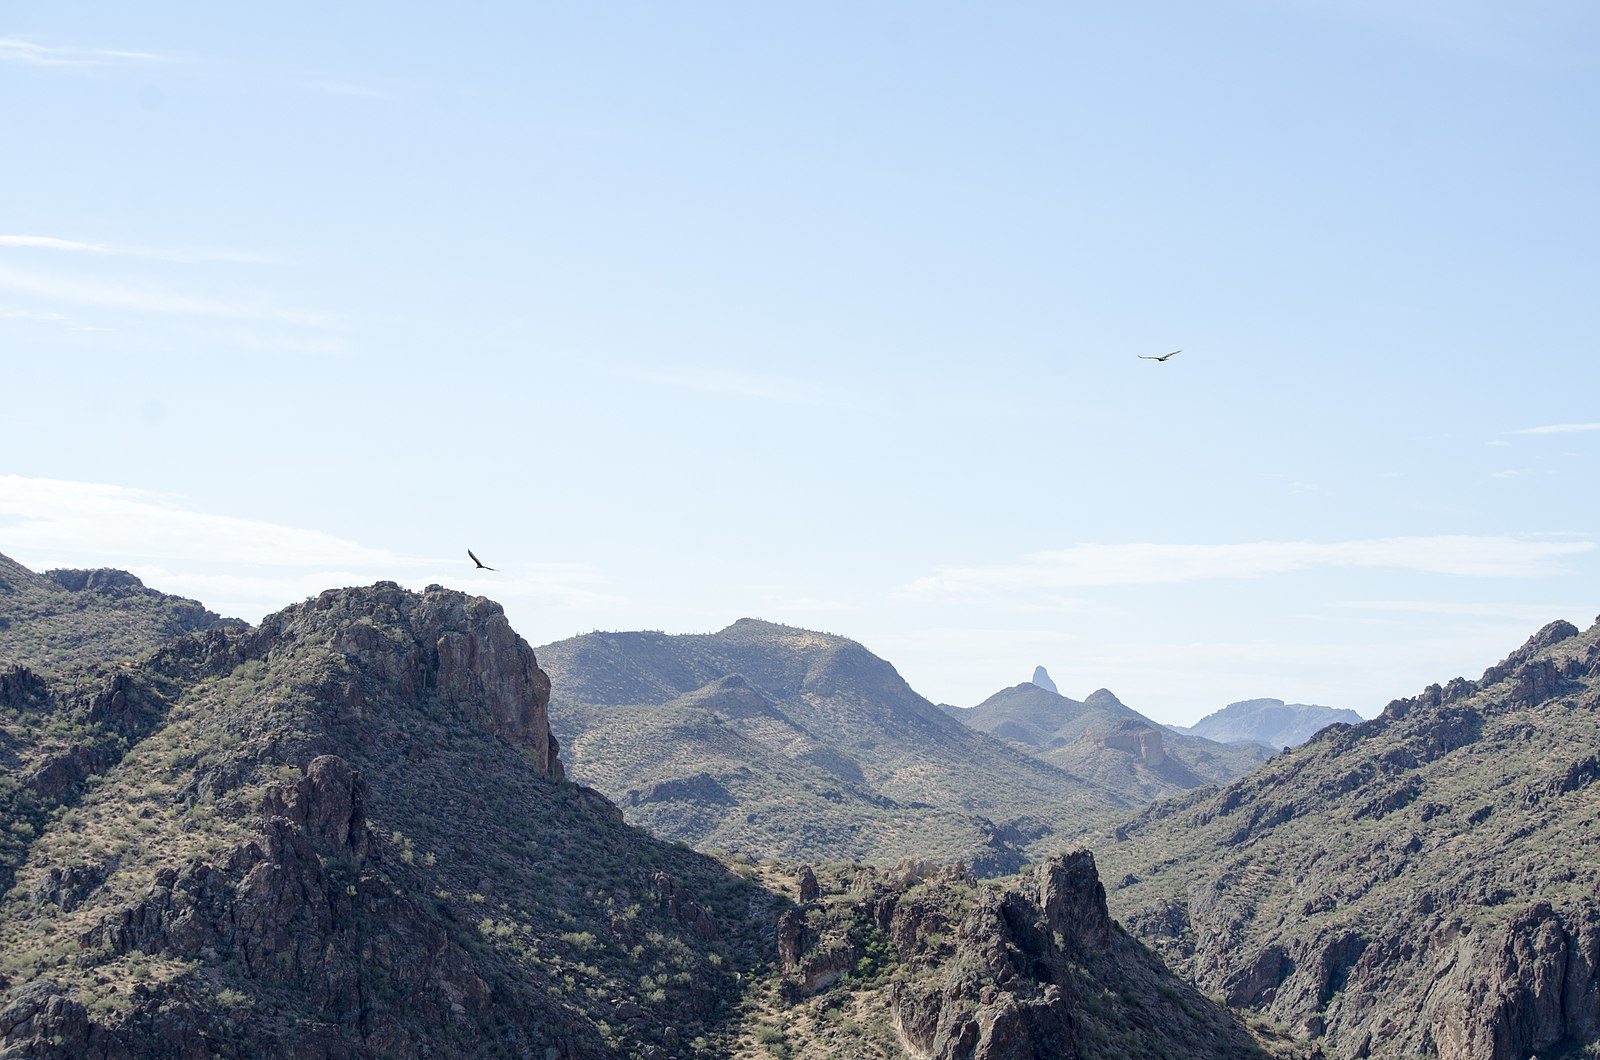 1600px-Eastern_View_from_Mt_Pinter,_Tonto_National_Forest,_Arizona_-_panoramio_(1).jpg